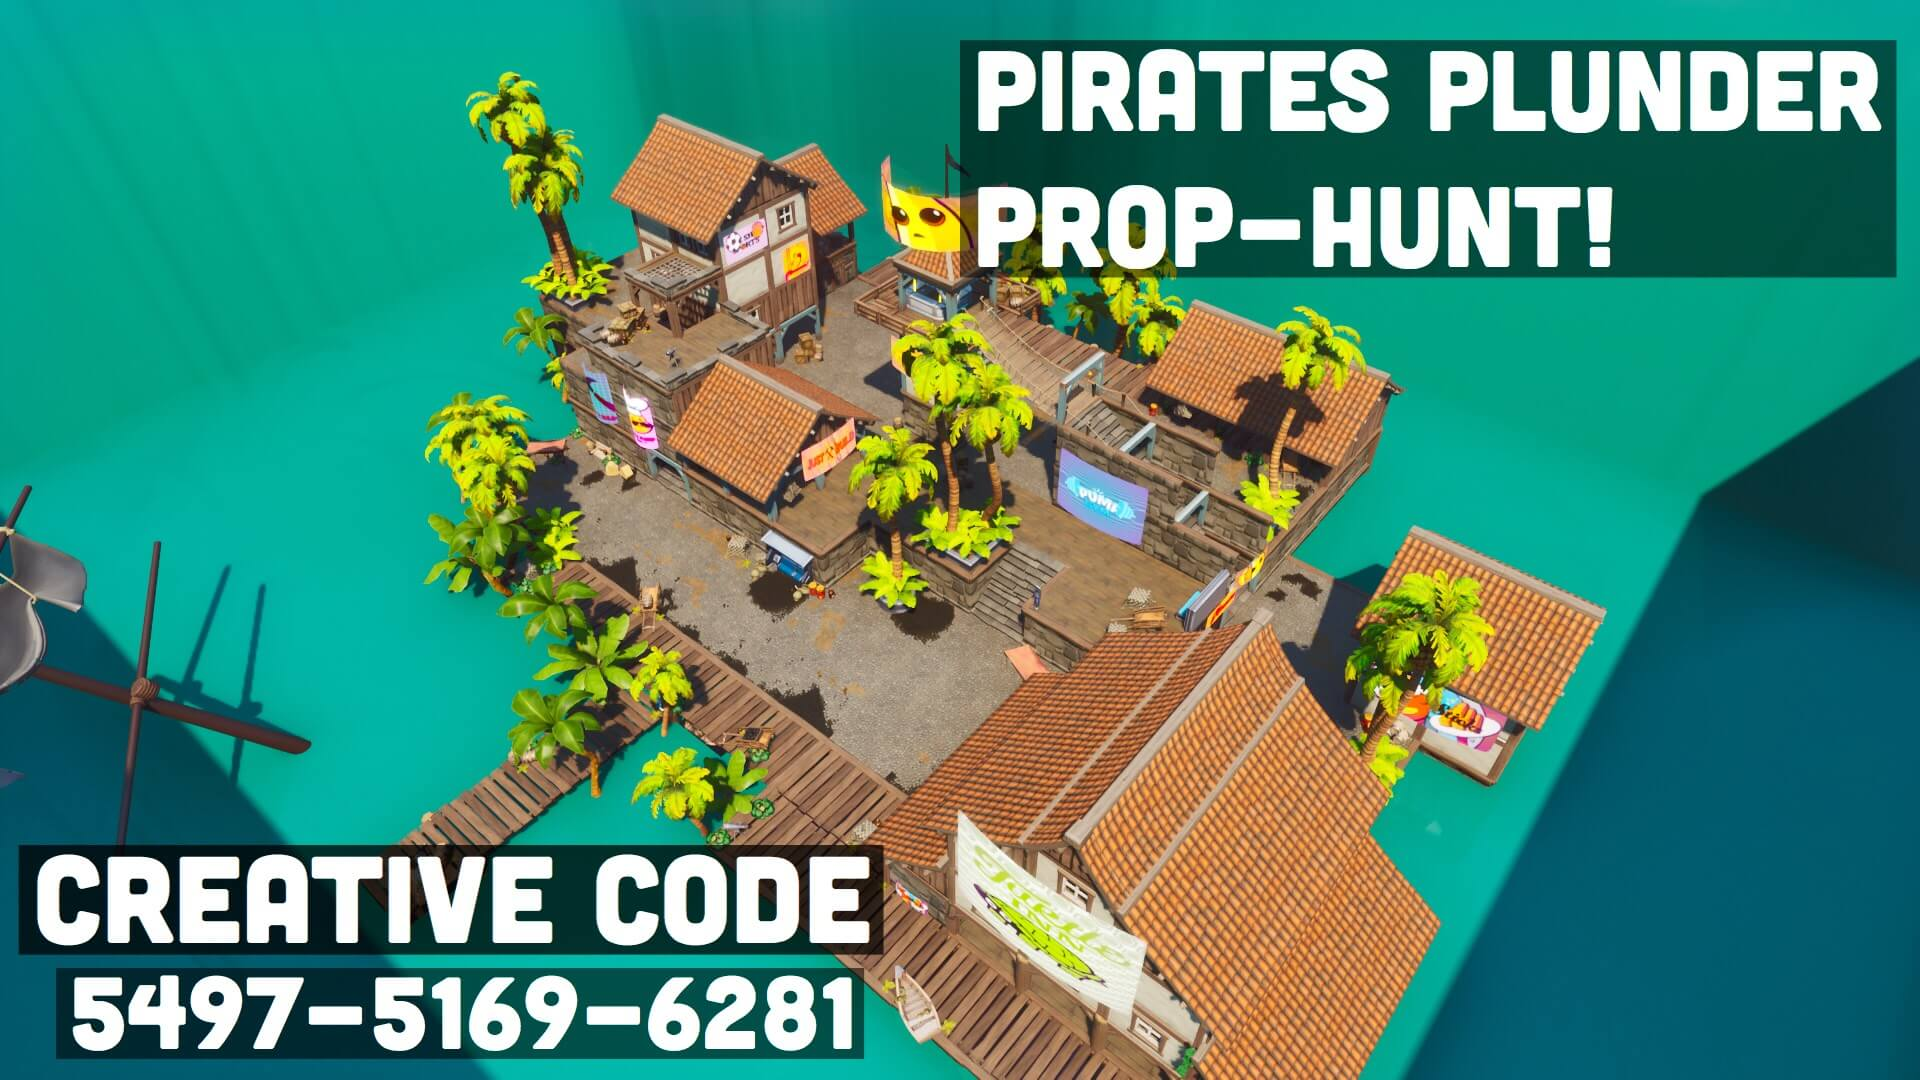 PIRATES PLUNDER PROP-HUNT!